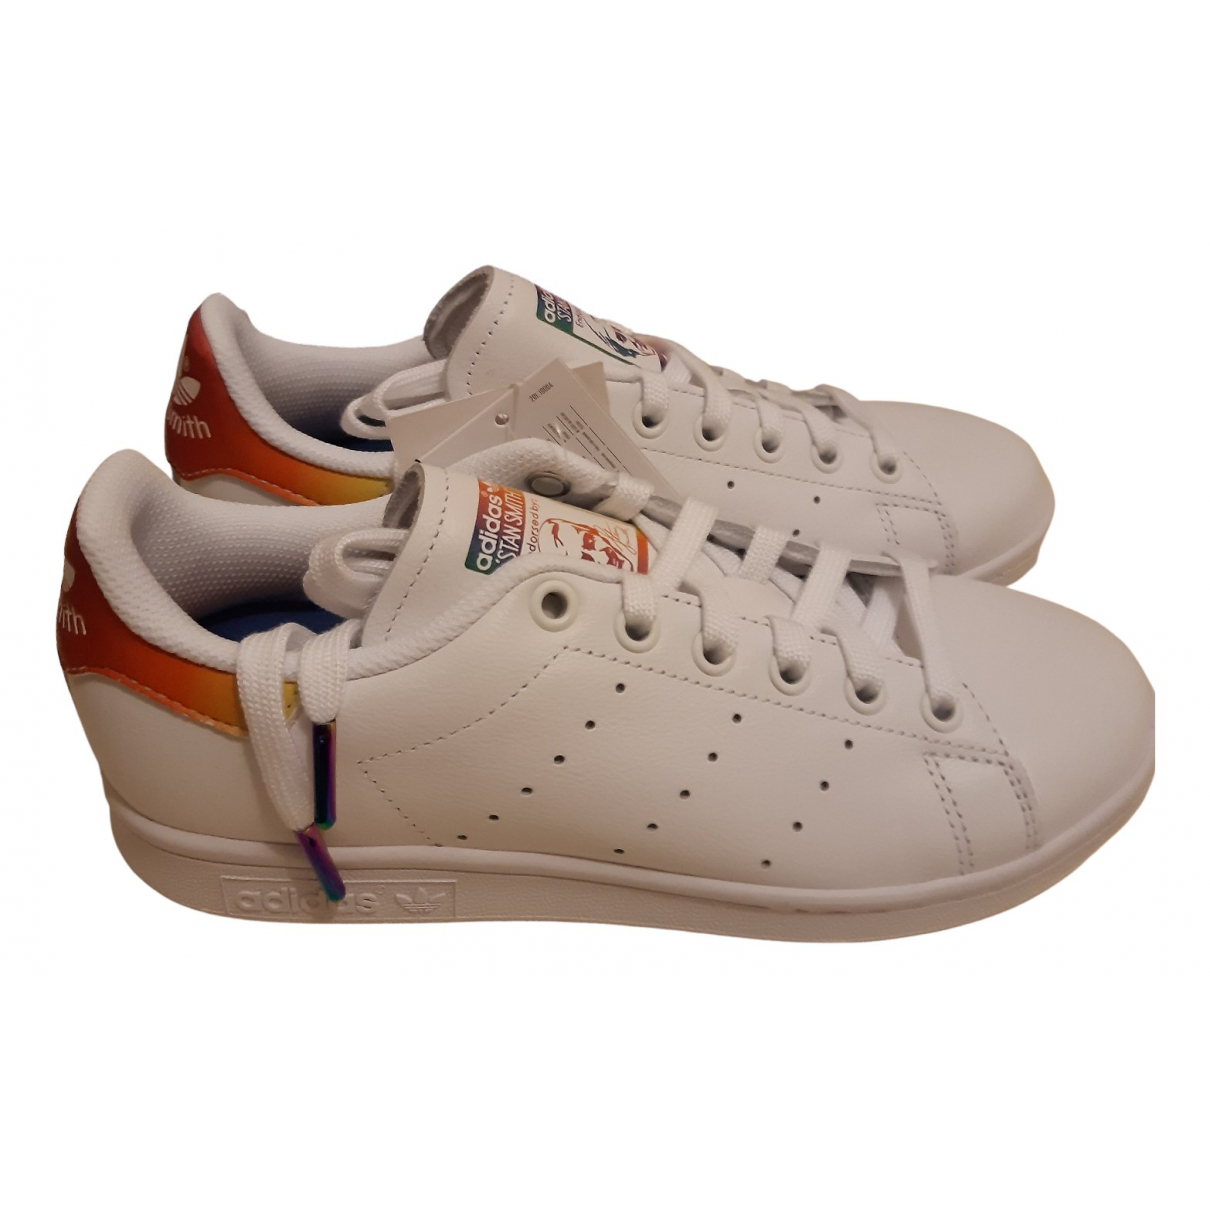 Adidas Stan Smith White Leather Trainers for Women 37 EU